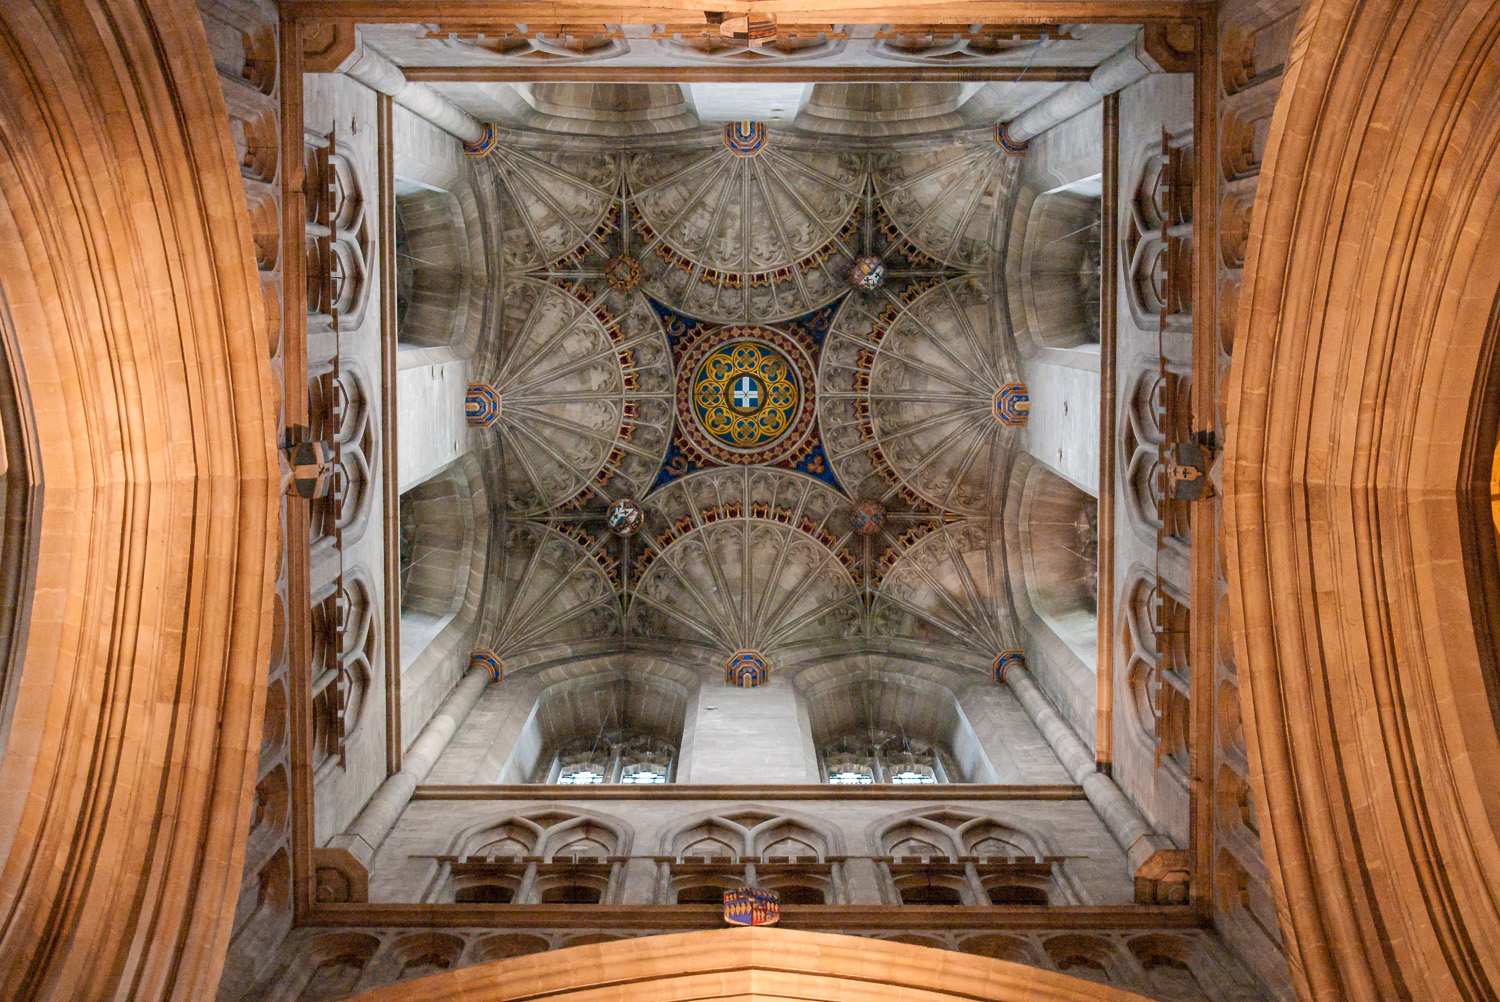 The massive vault of Canterbury Cathedral not only implies grandeur and loftiness, but also the tremendous potential of the community of the Church in working together (the delicate tendrils of the fan arches working together hold up the massive roof).